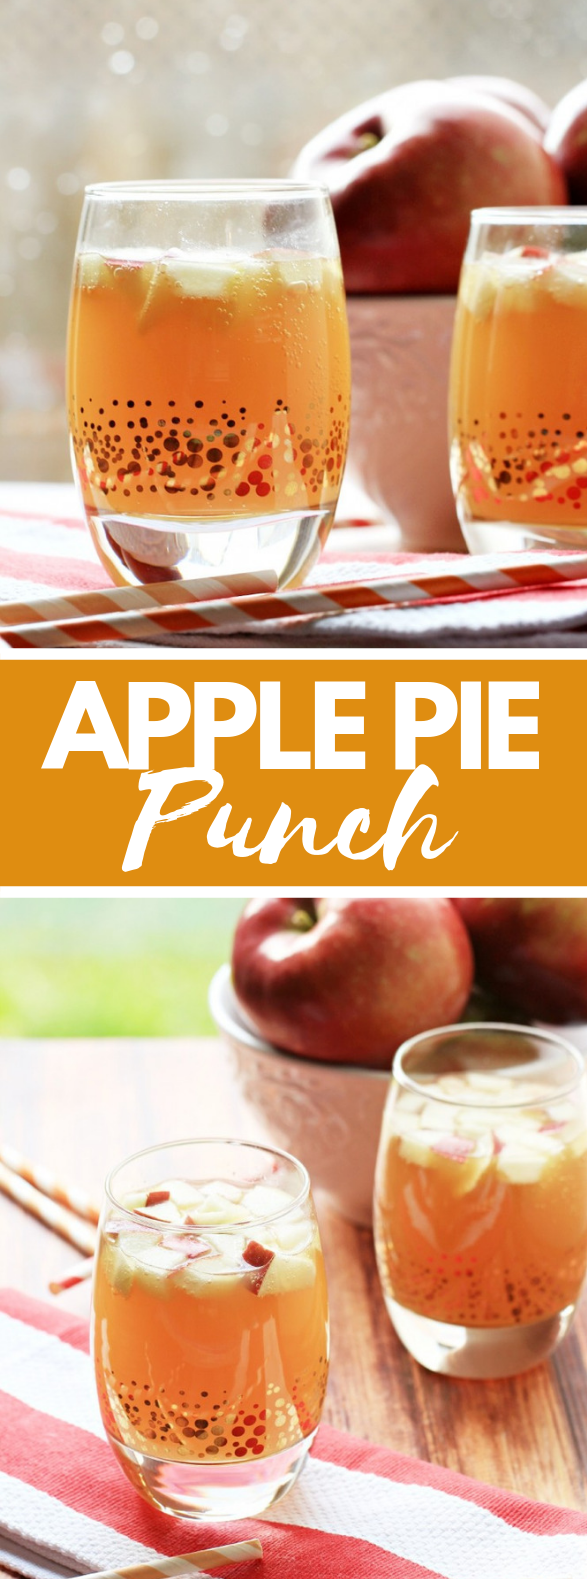 NON ALCOHOLIC APPLE PIE PUNCH #falldrink #thanksgiving